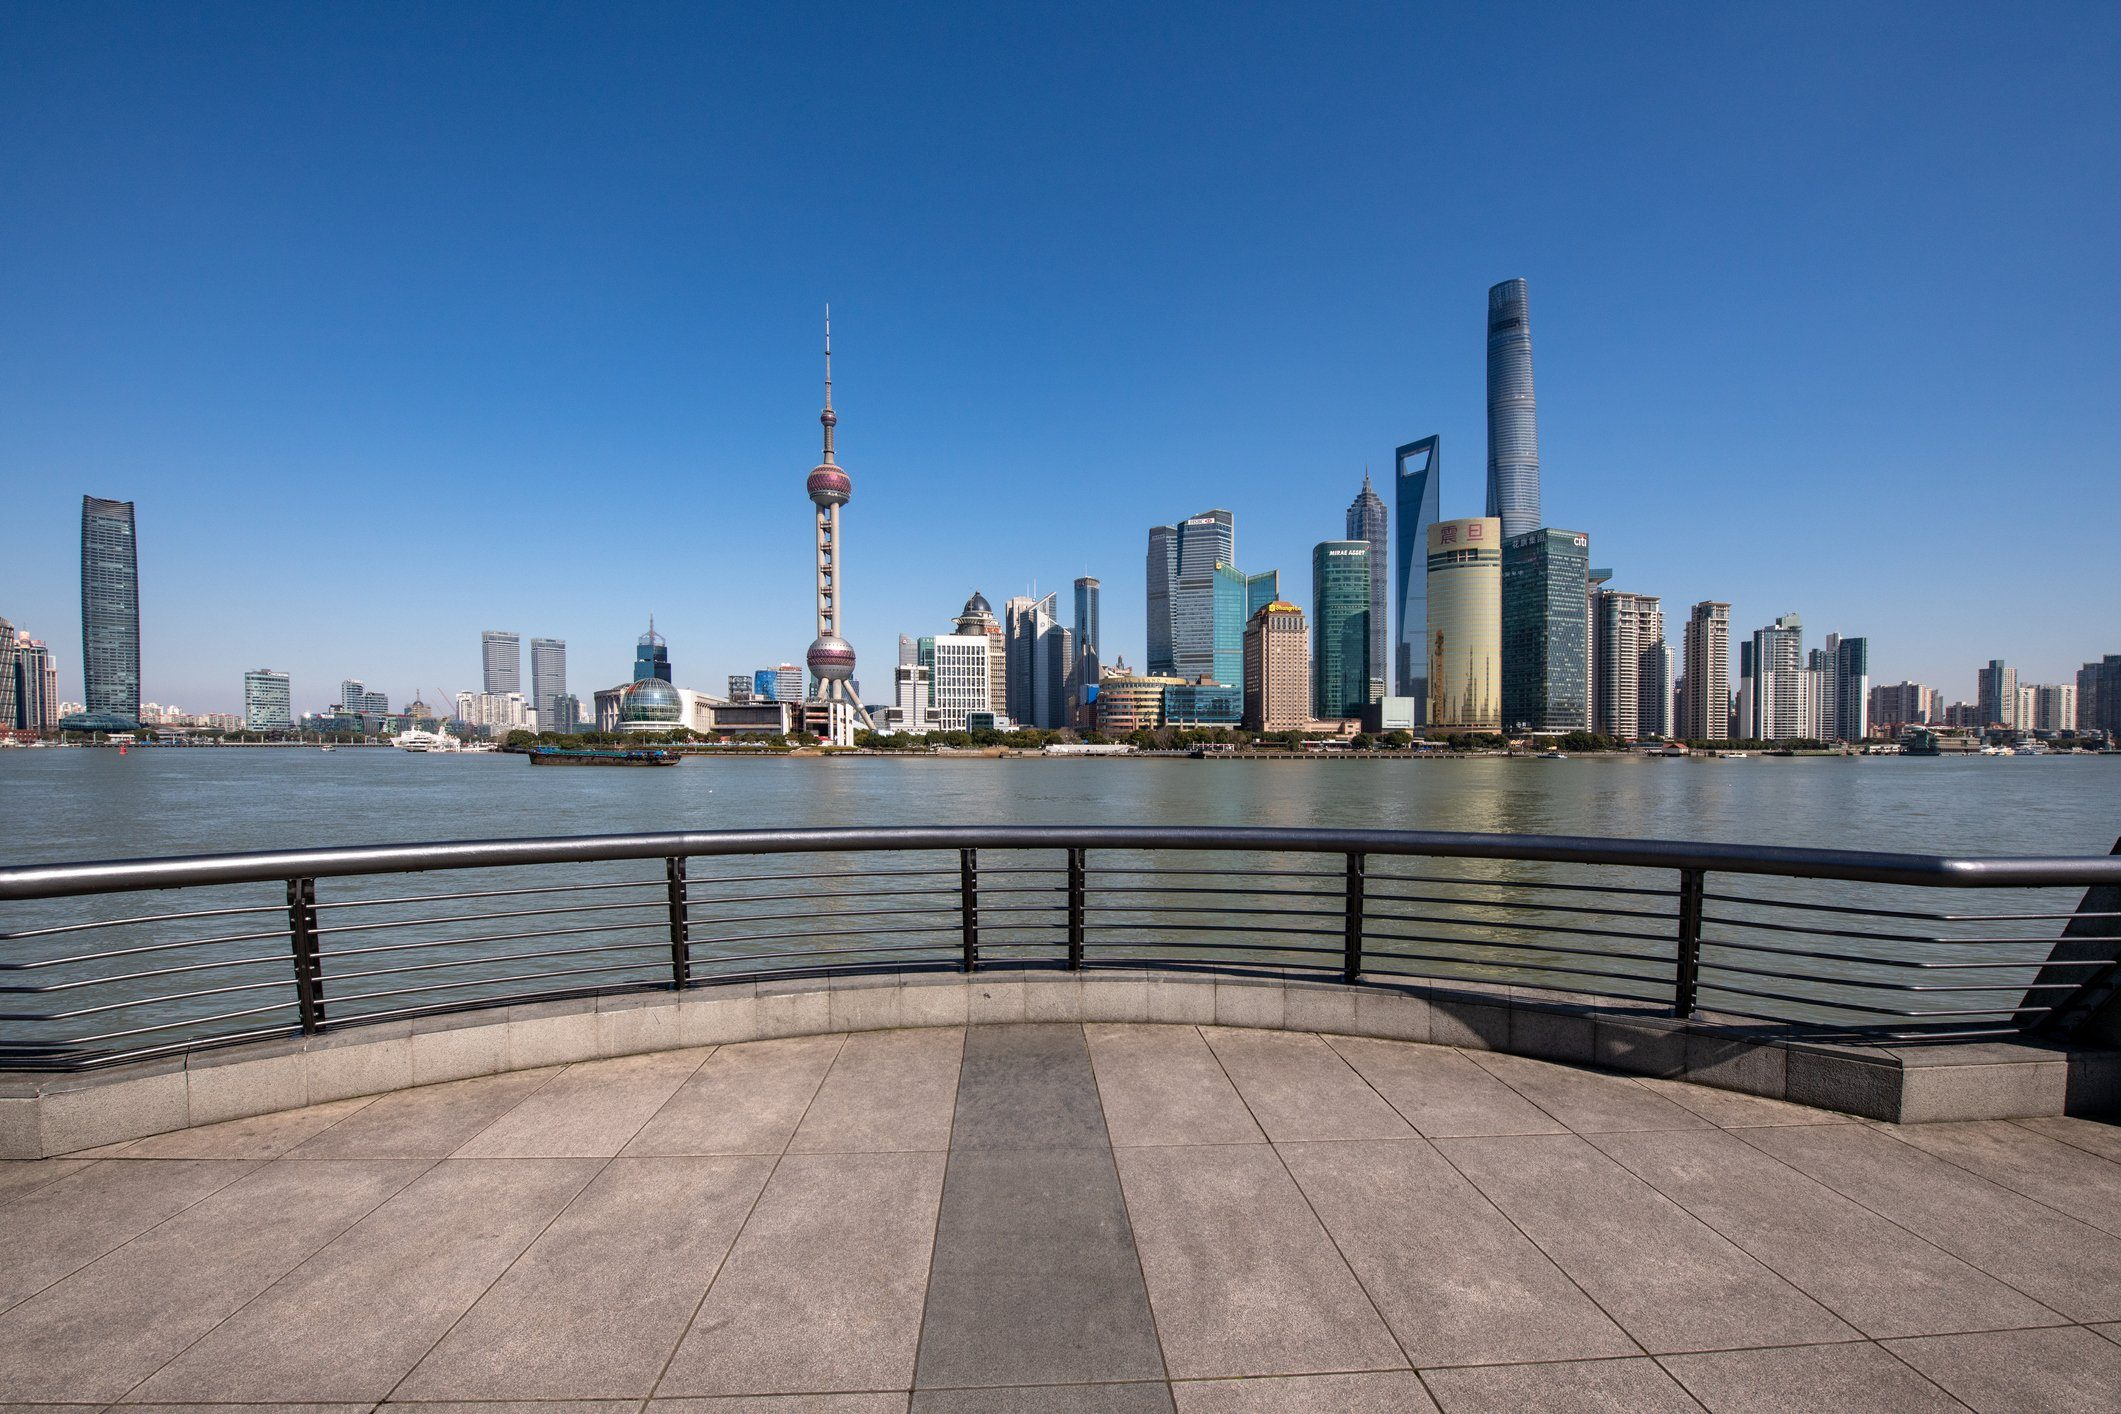 The Bund Shanghai During Lockdown in a Sunny Day Because of COVID-19